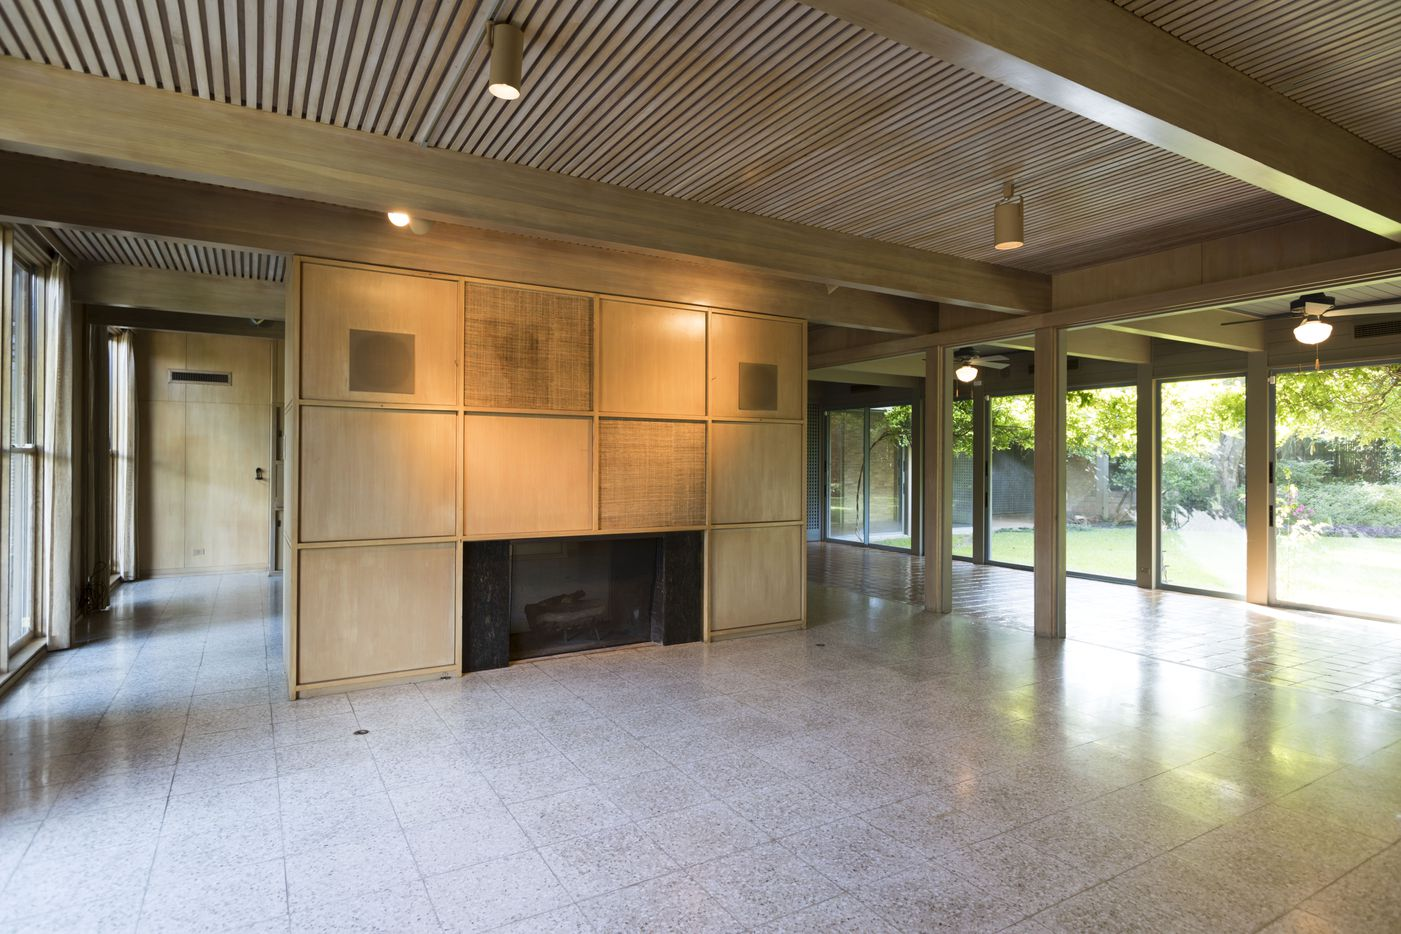 The see-through fireplace and block-panel cabinets are a centerpiece of the living room.